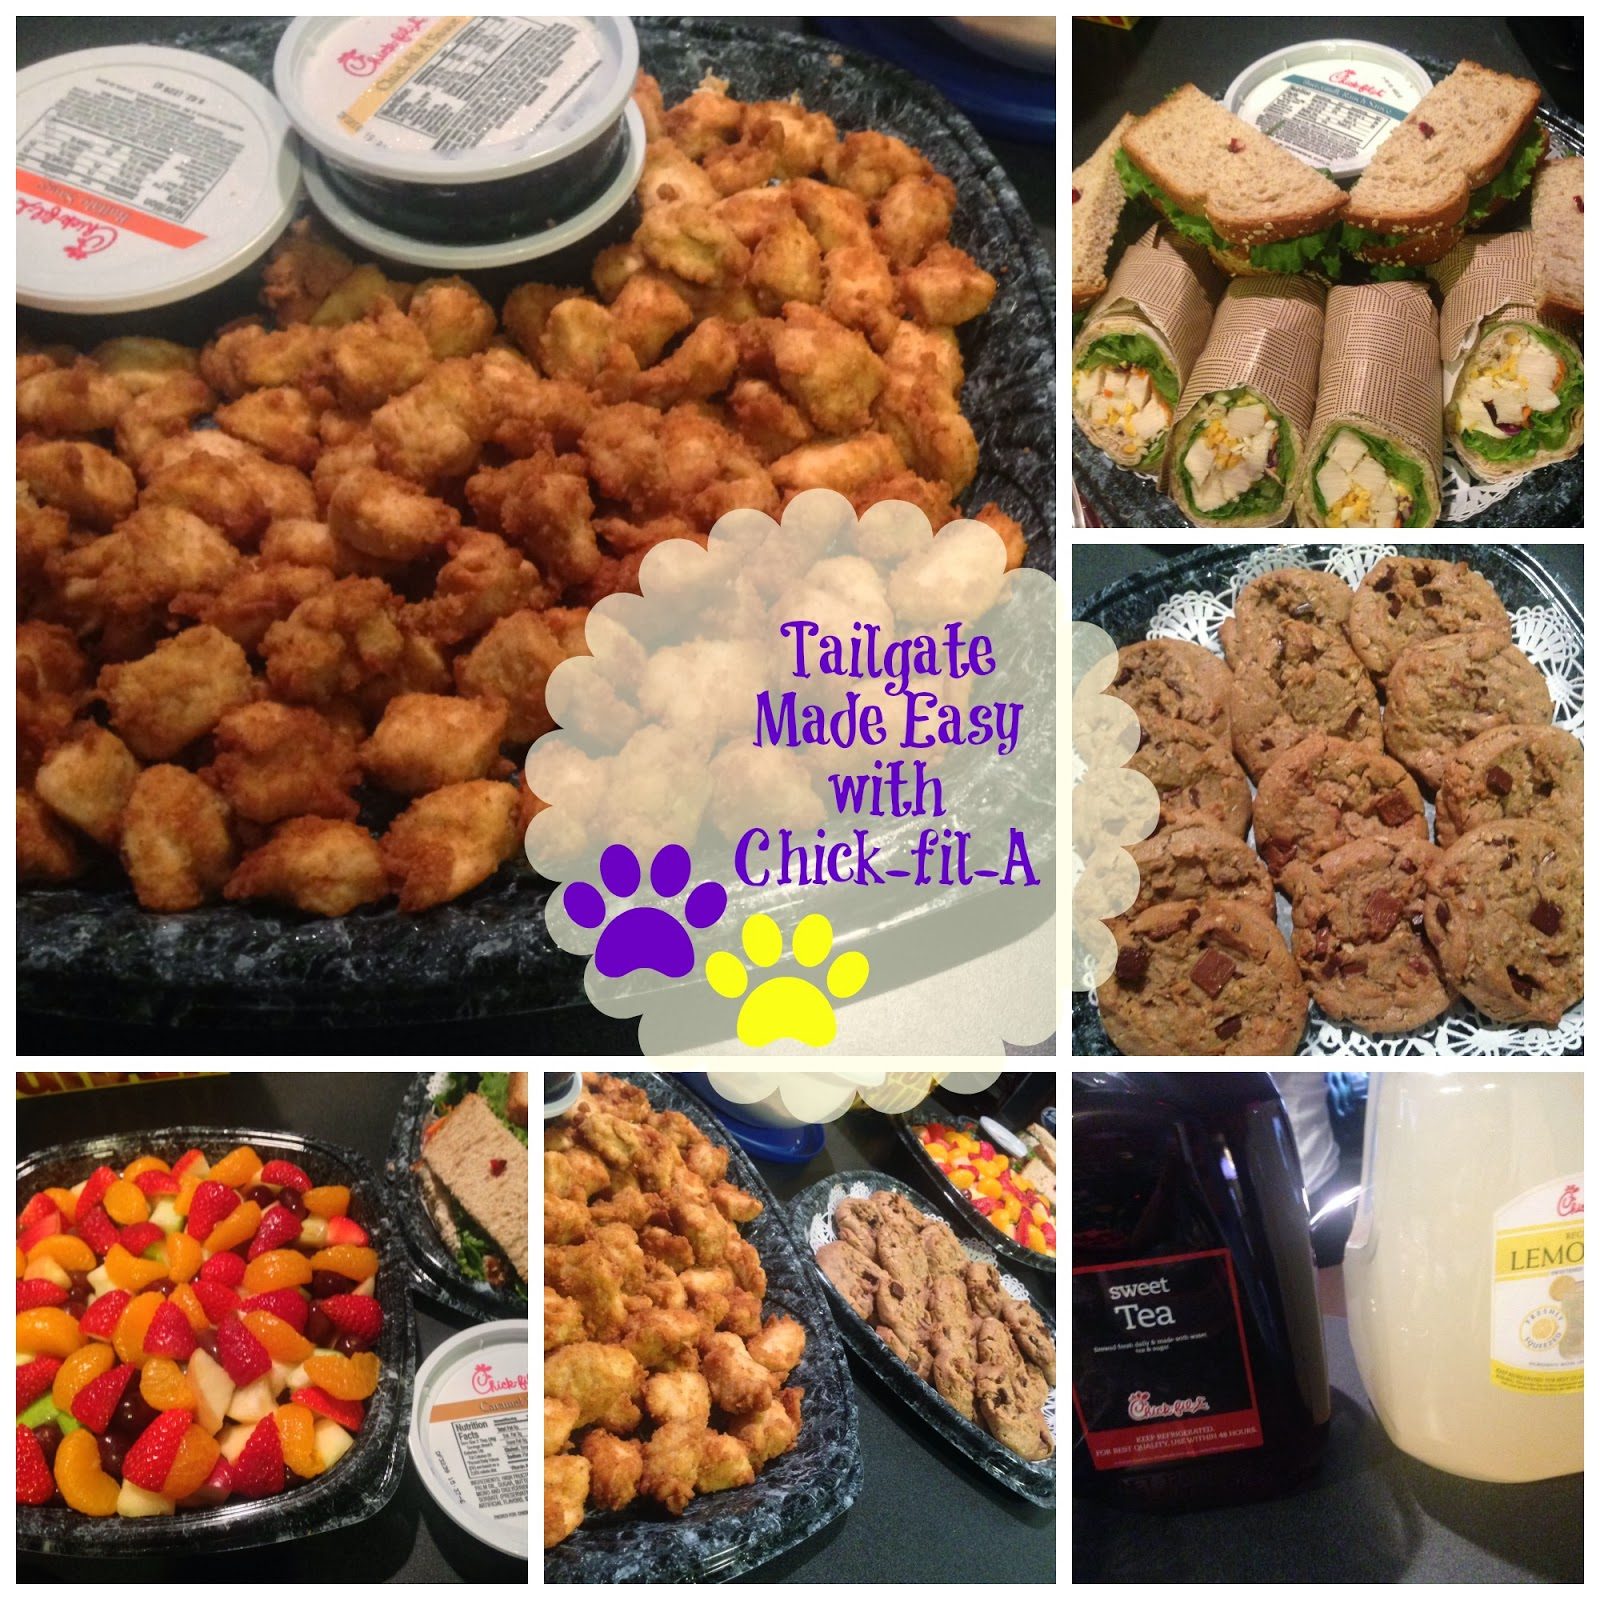 Below are the latest Chick Fil A catering prices for Chick fil A platters, Chick fil A trays, Chick fil A party trays, Chick fil A nugget trays, and much more. Please be aware, the prices below are for pickup only! Chick fil A has different catering prices for delivery. Chick-fil-A catering prices may vary by location.